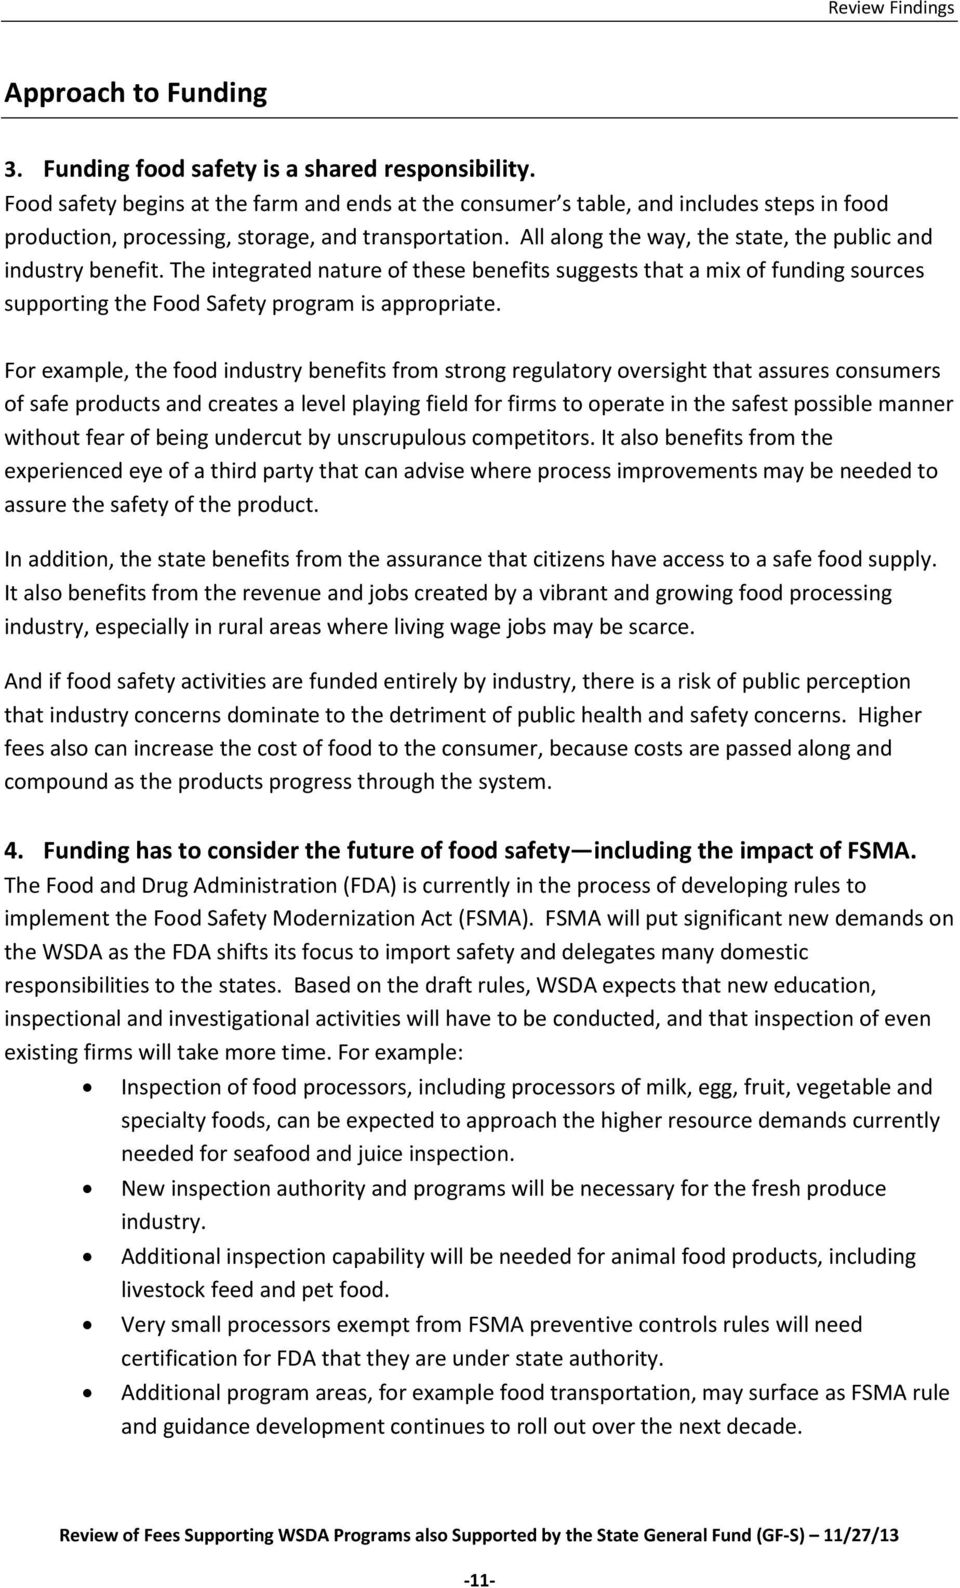 All along the way, the state, the public and industry benefit. The integrated nature of these benefits suggests that a mix of funding sources supporting the Food Safety program is appropriate.